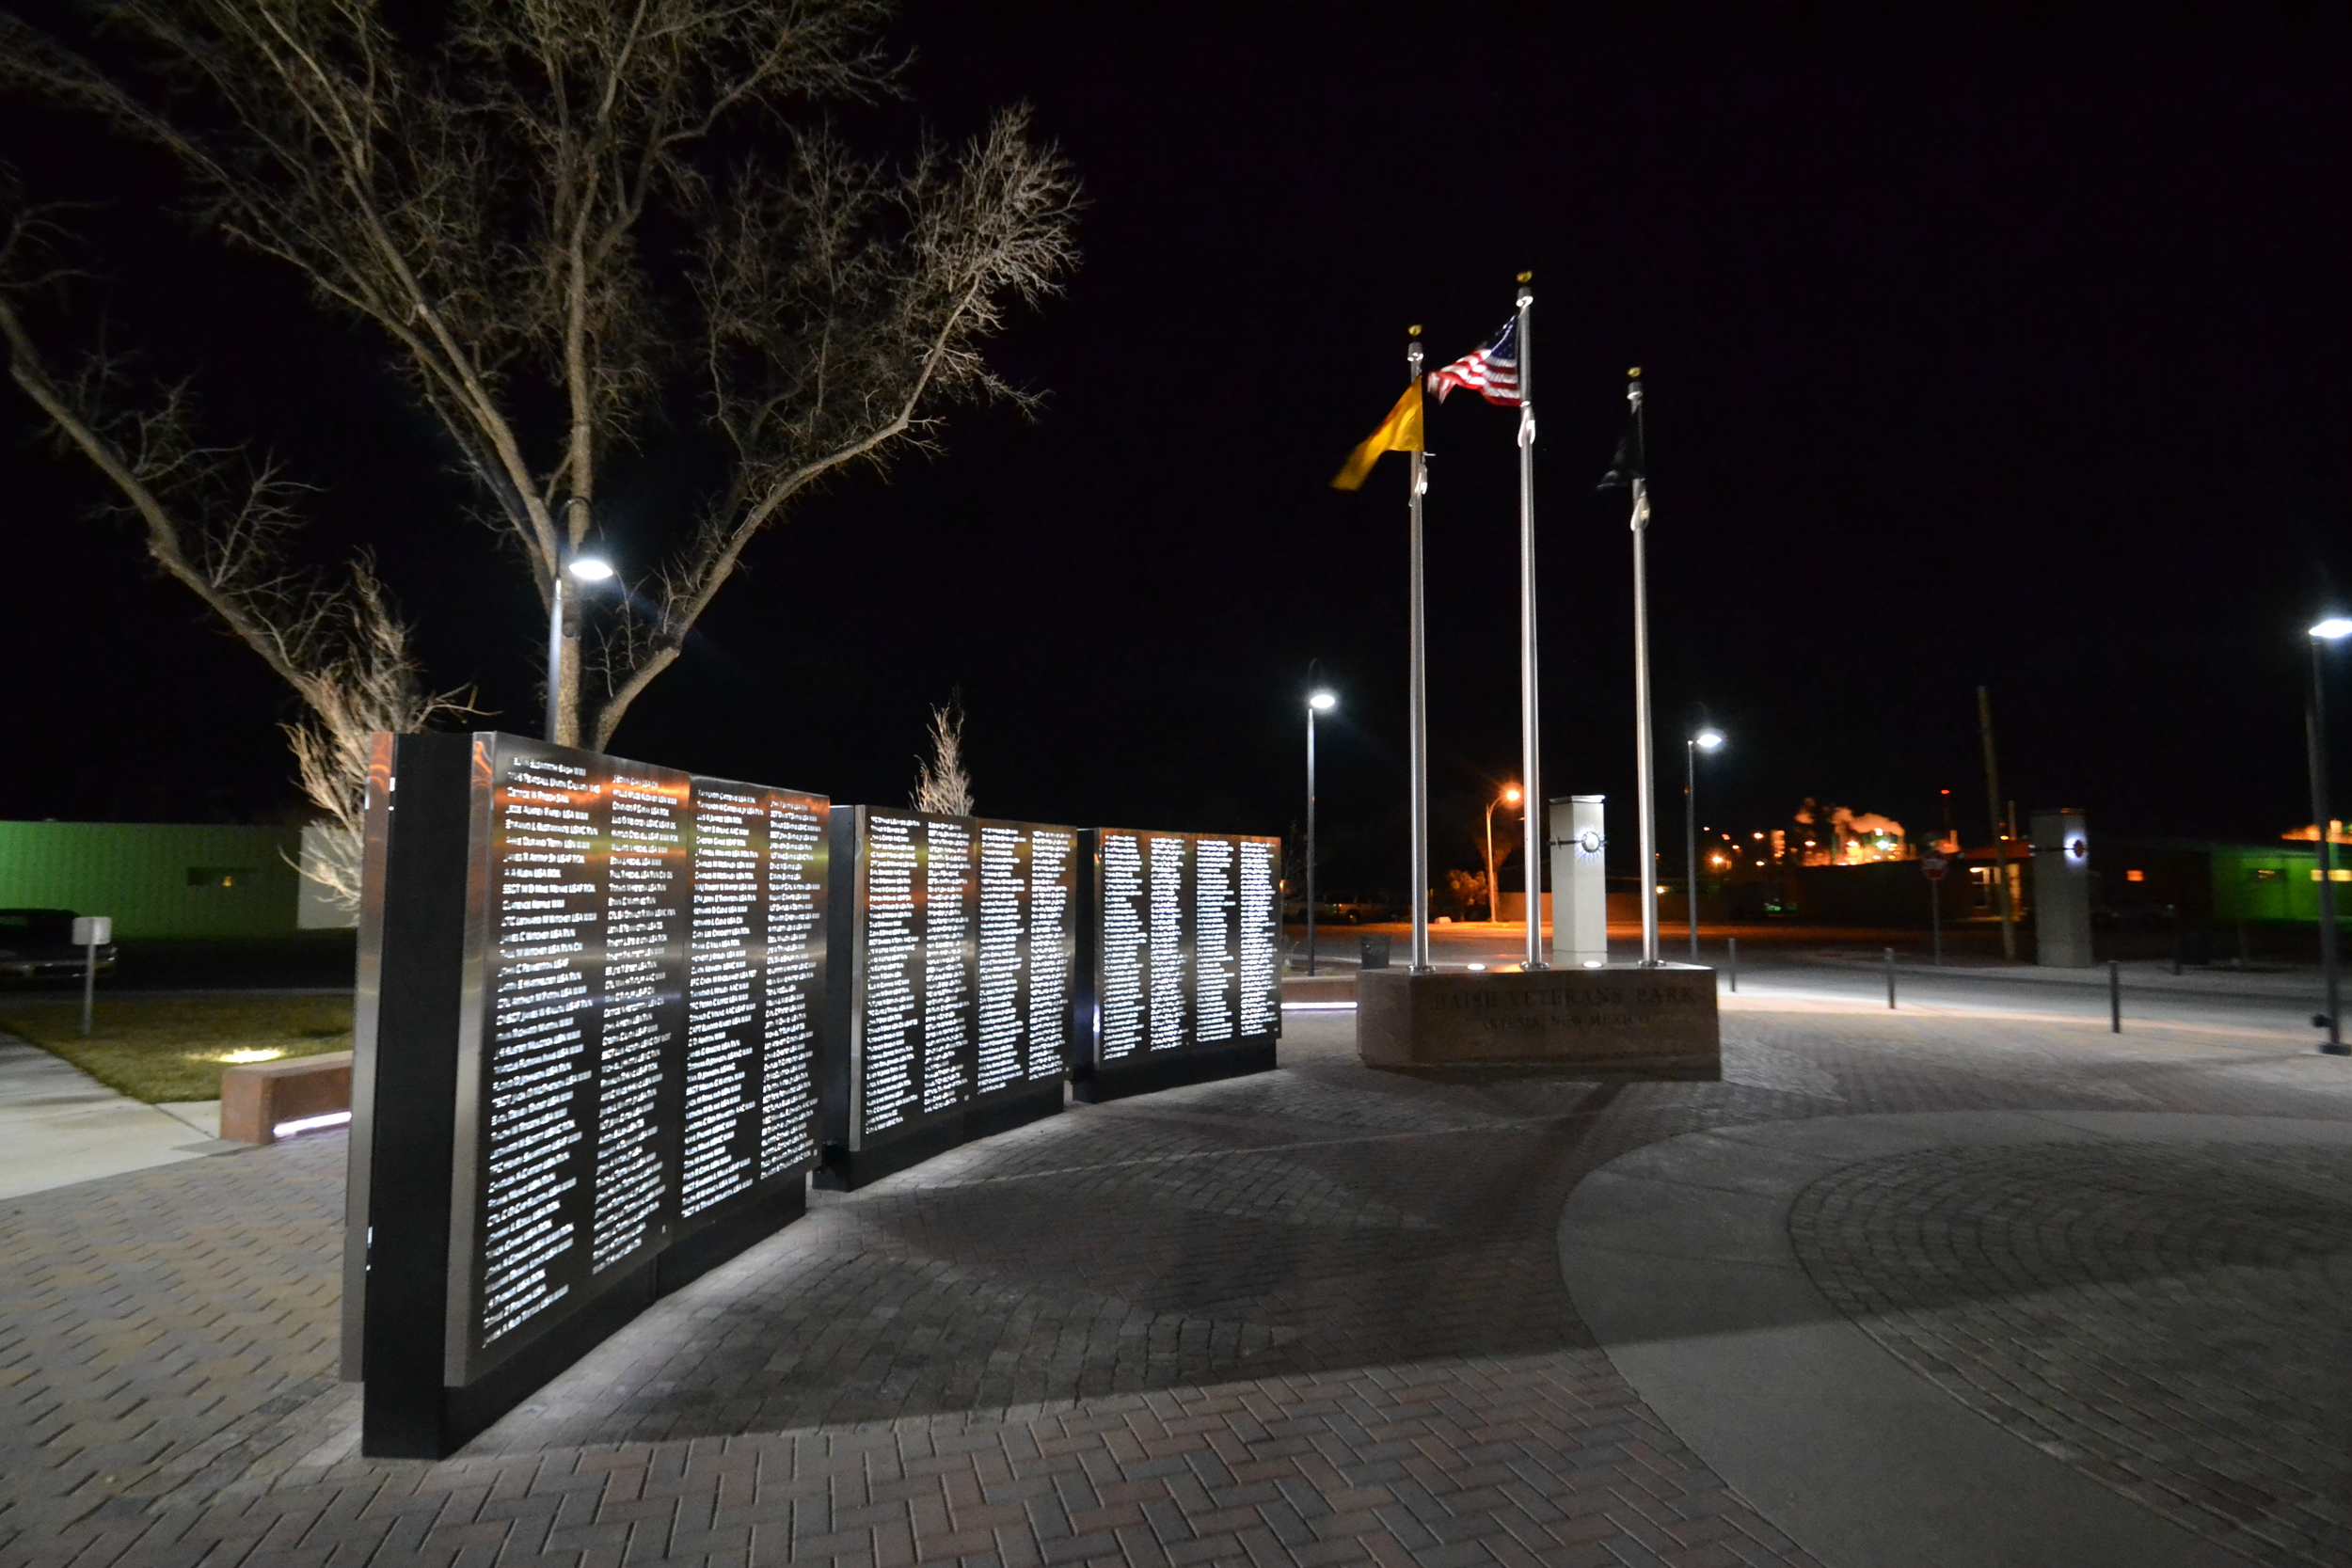 The remembrance wall at night